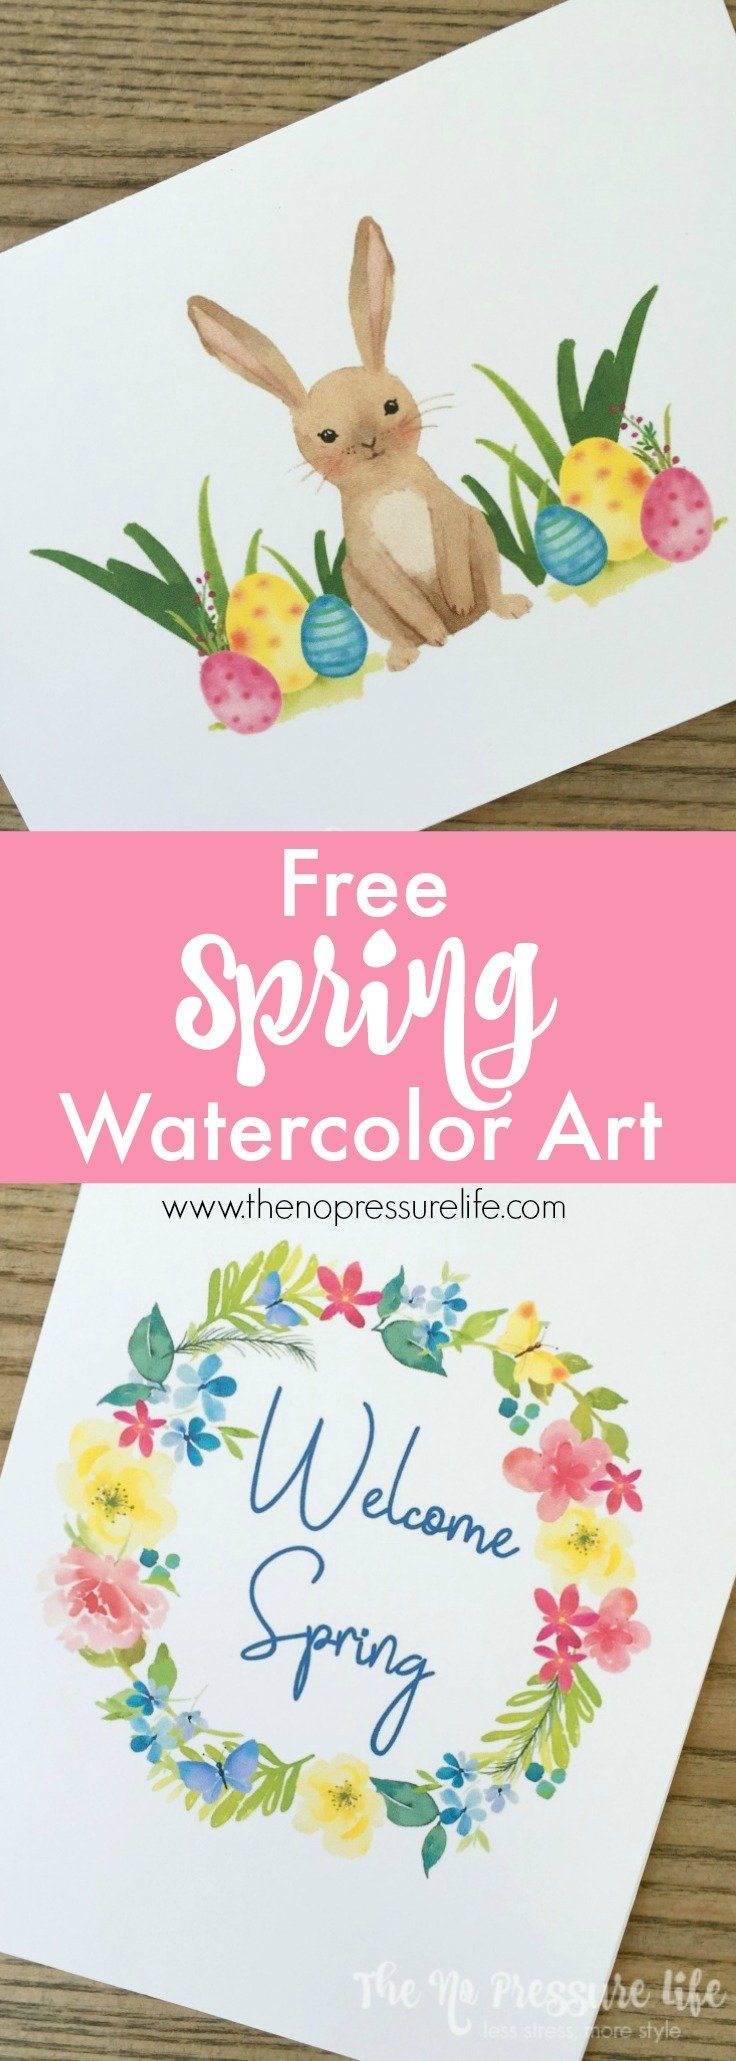 These free spring printables are so cute! Get free spring printable art to decorate your home! Free watercolor prints for spring. | The No Pressure Life